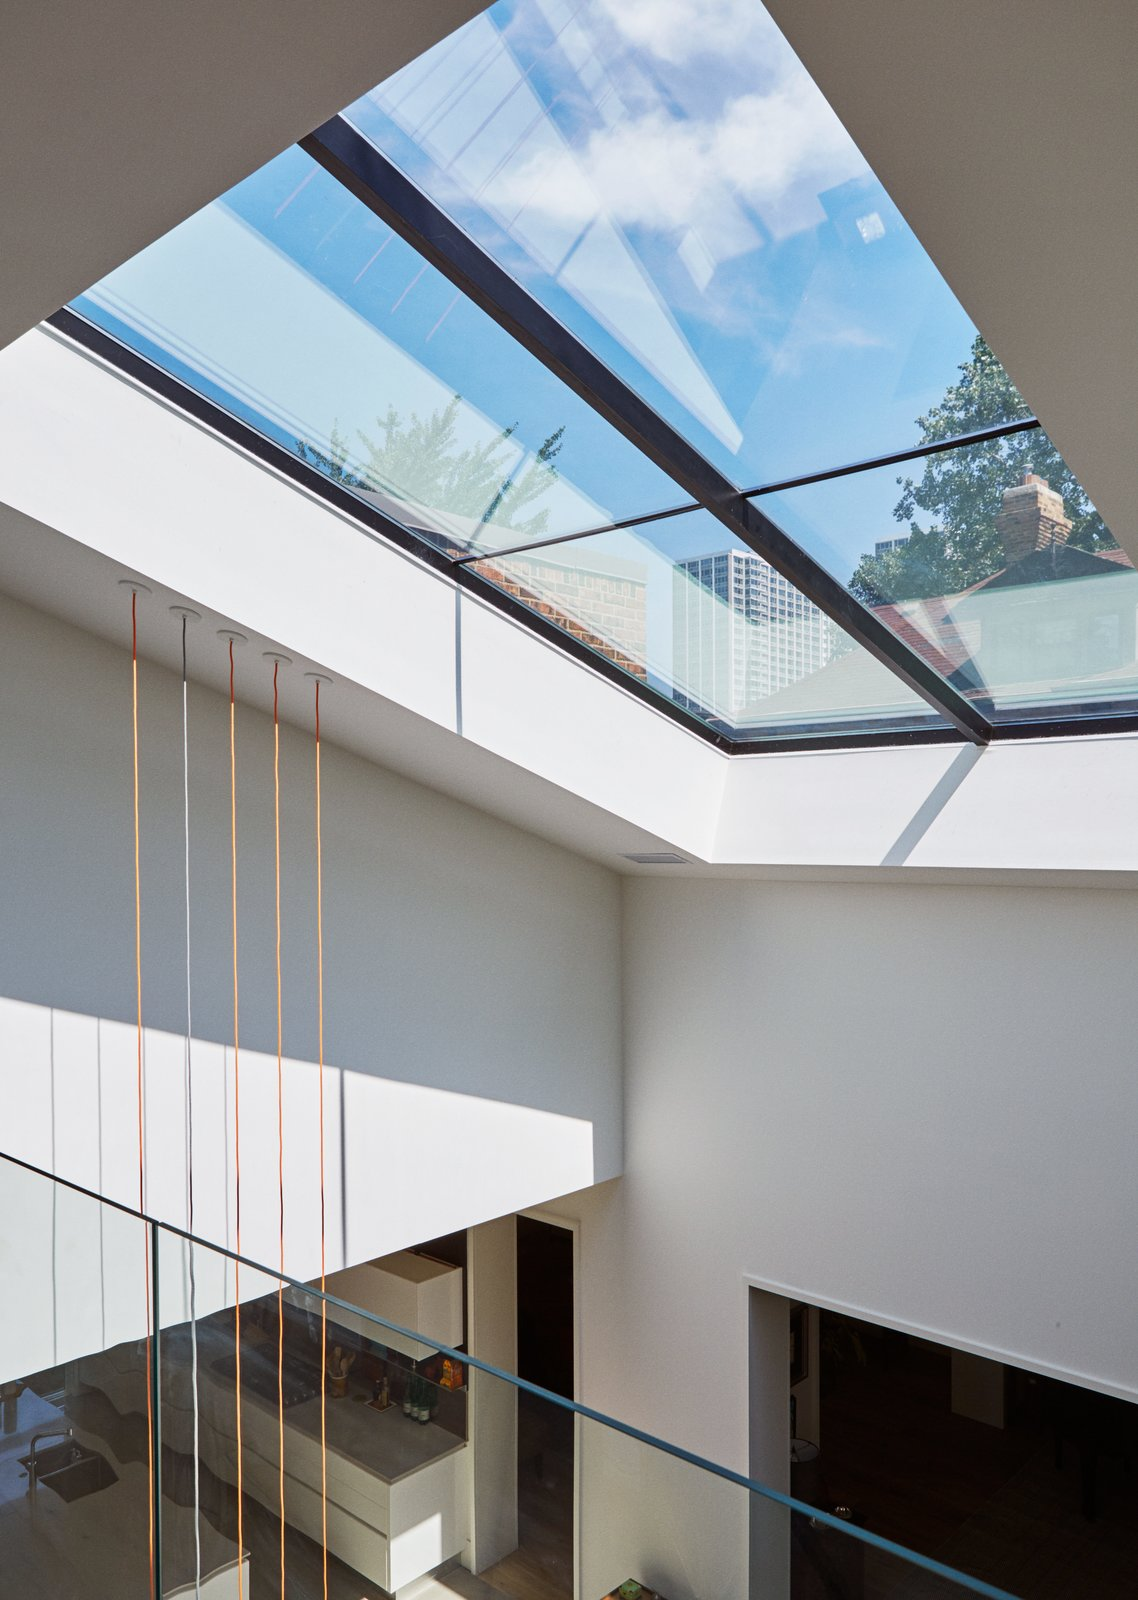 A newly expanded window over the atrium allows glimpses of the surrounding neighborhood. An Impressive 20-Foot Skylight Transforms a Jumbled Chicago Home - Photo 11 of 13